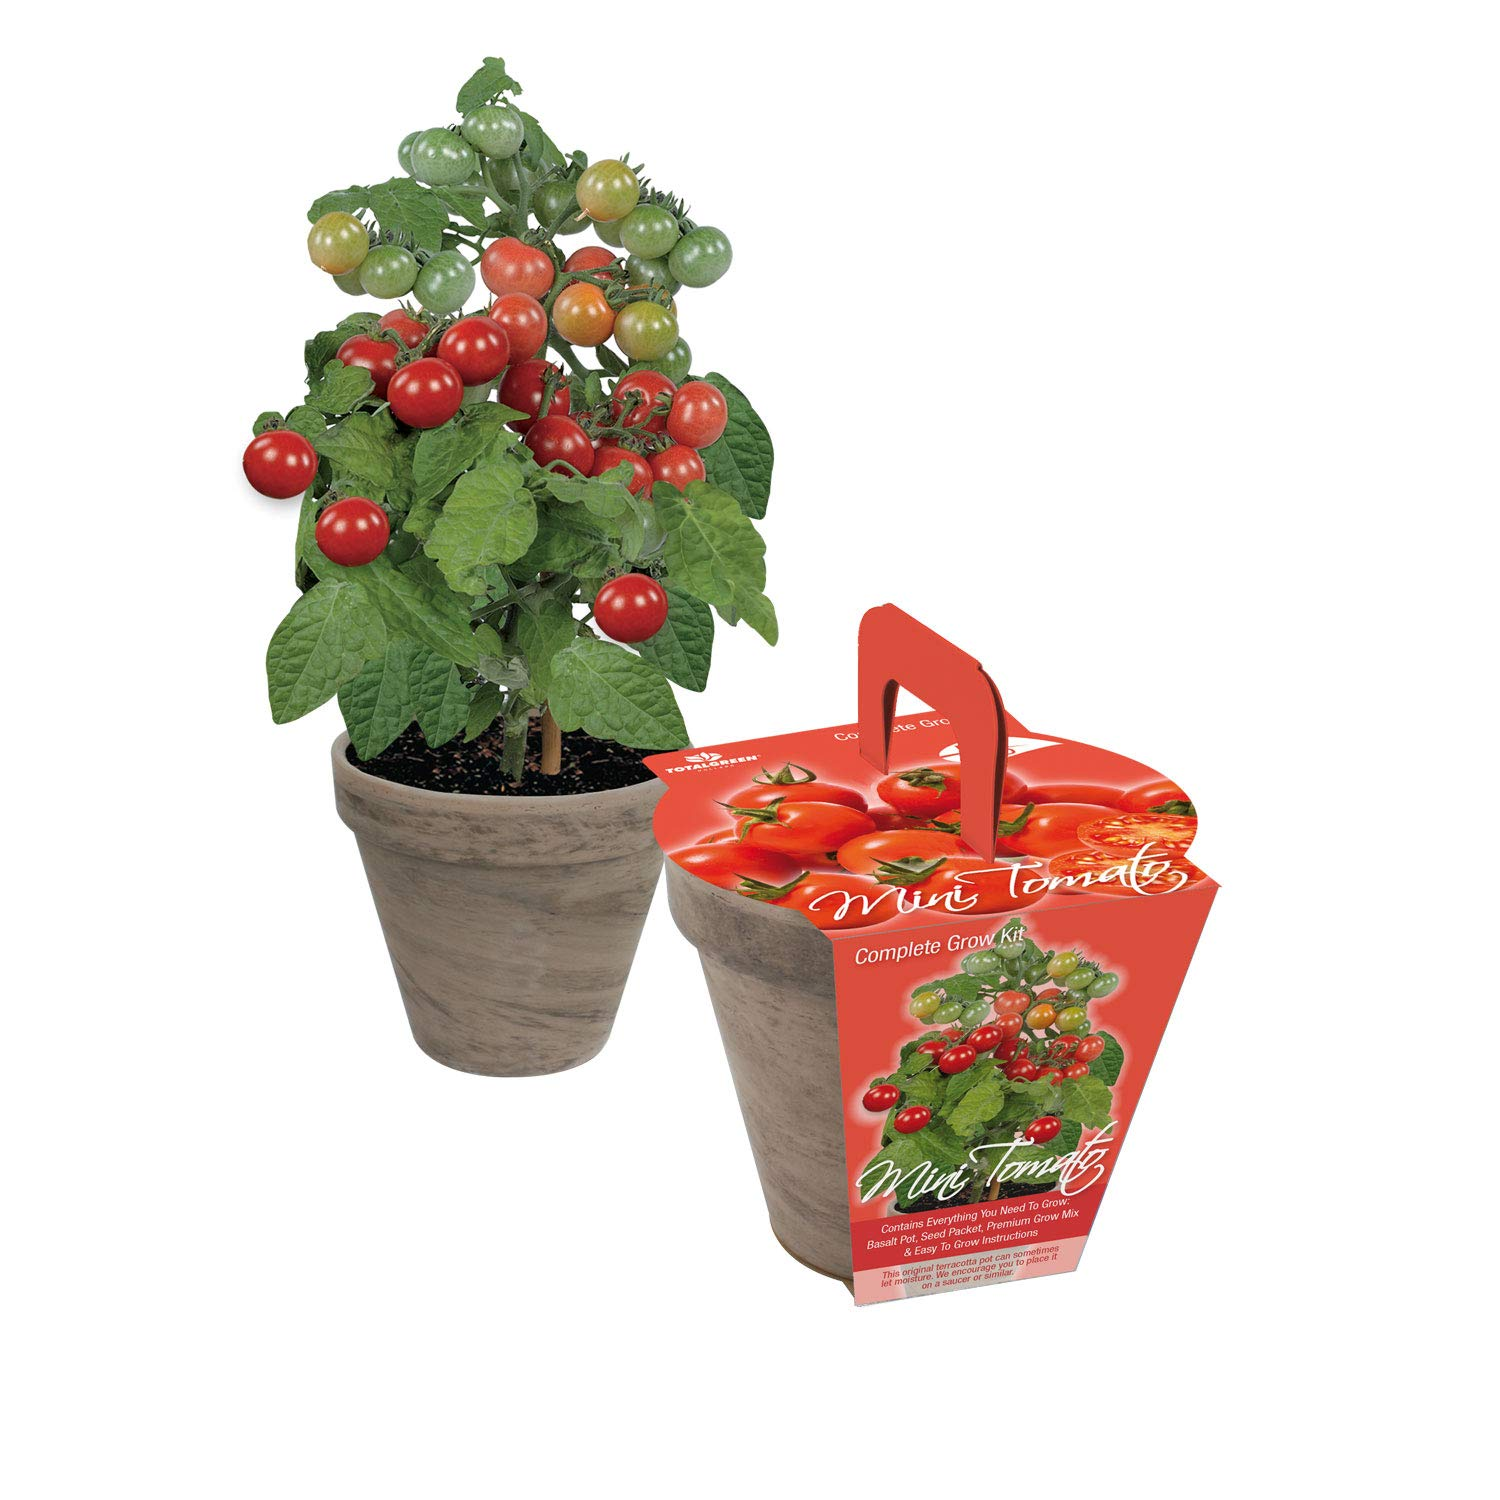 TotalGreen Holland Special Mini Tomato Grow Kit | Grow Fresh Mini Tomato Seeds Indoors | Great Gift Item | Grow Your Own Mini Tomato Plants in Unique Basalt Pot | Exclusive Kit by TotalGreen Holland by TotalGreen Holland (Image #4)